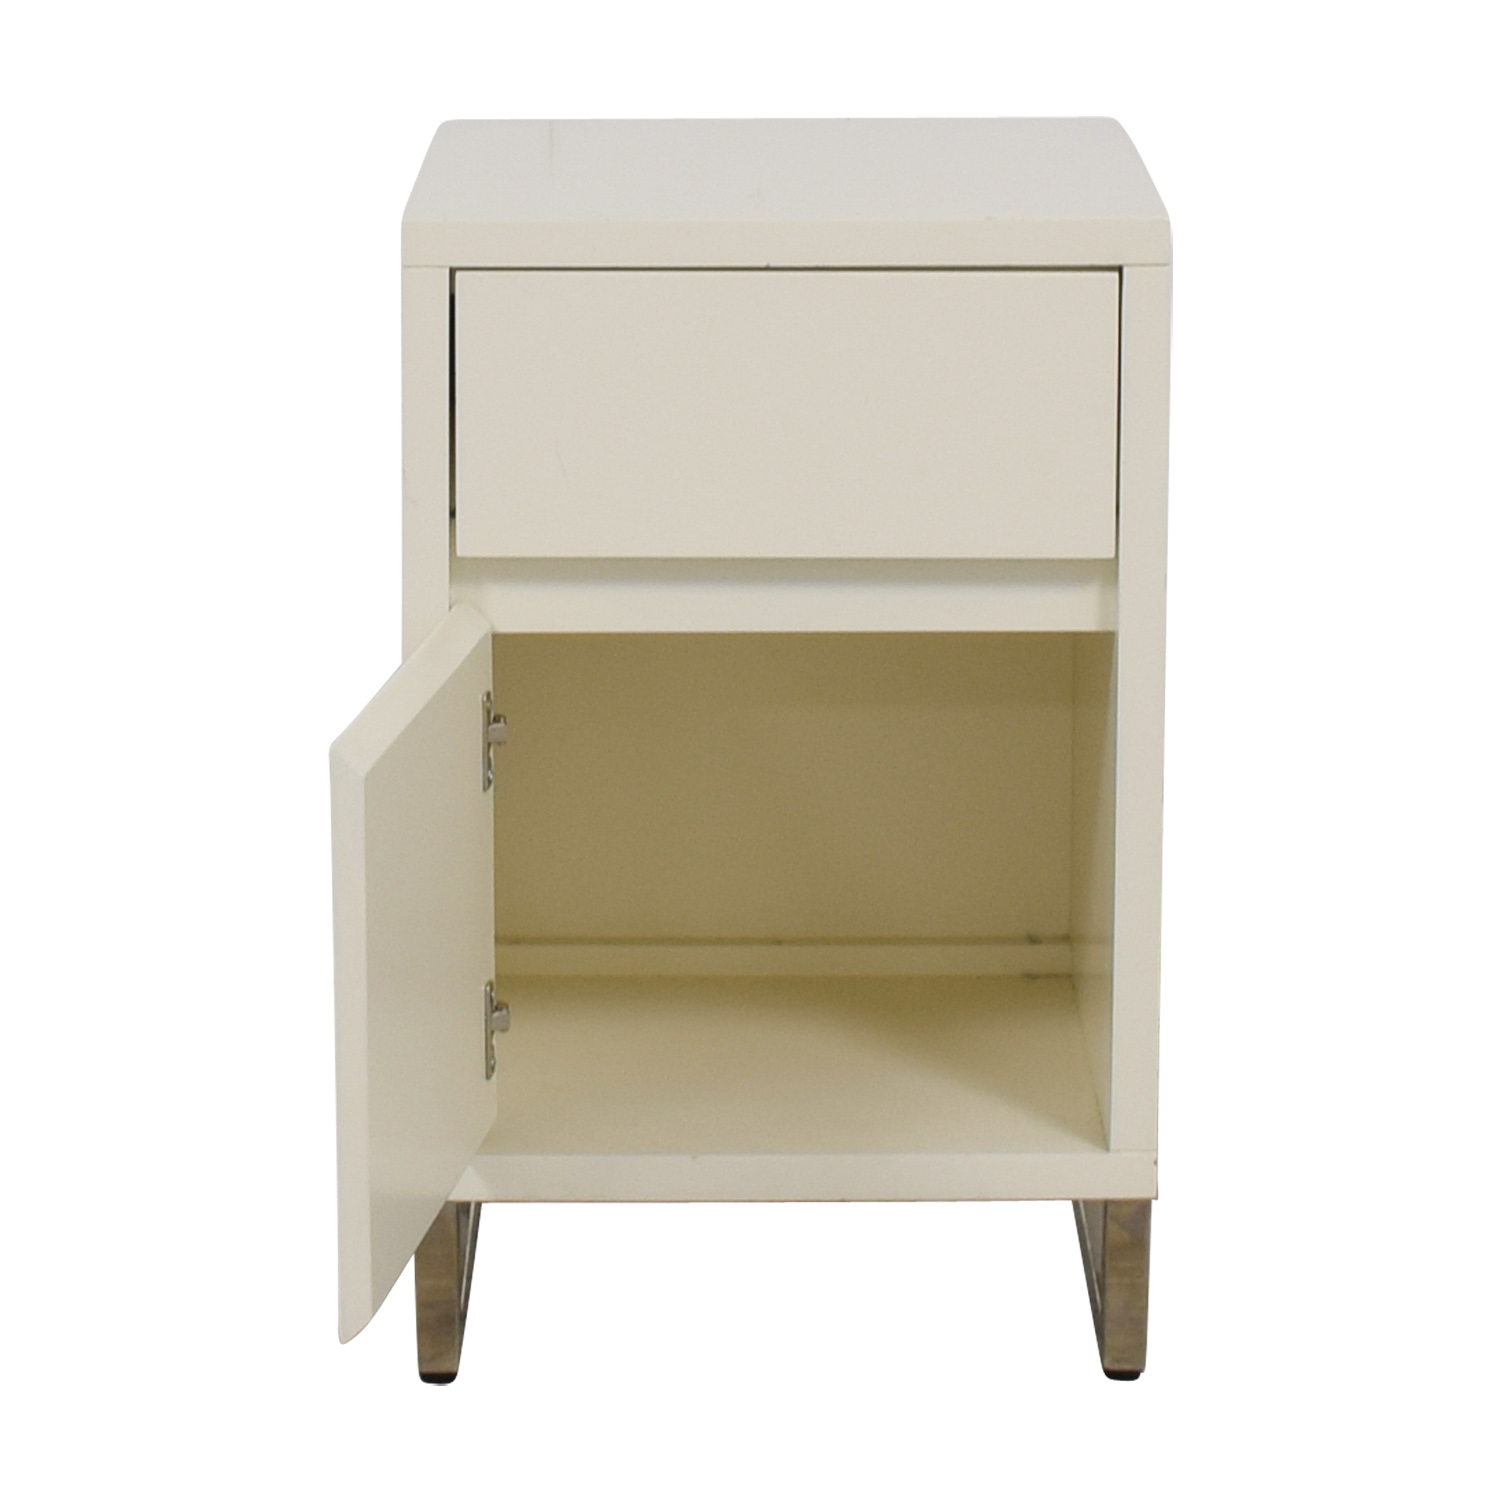 West Elm West Elm White Single Drawer with Storage Nightstand price